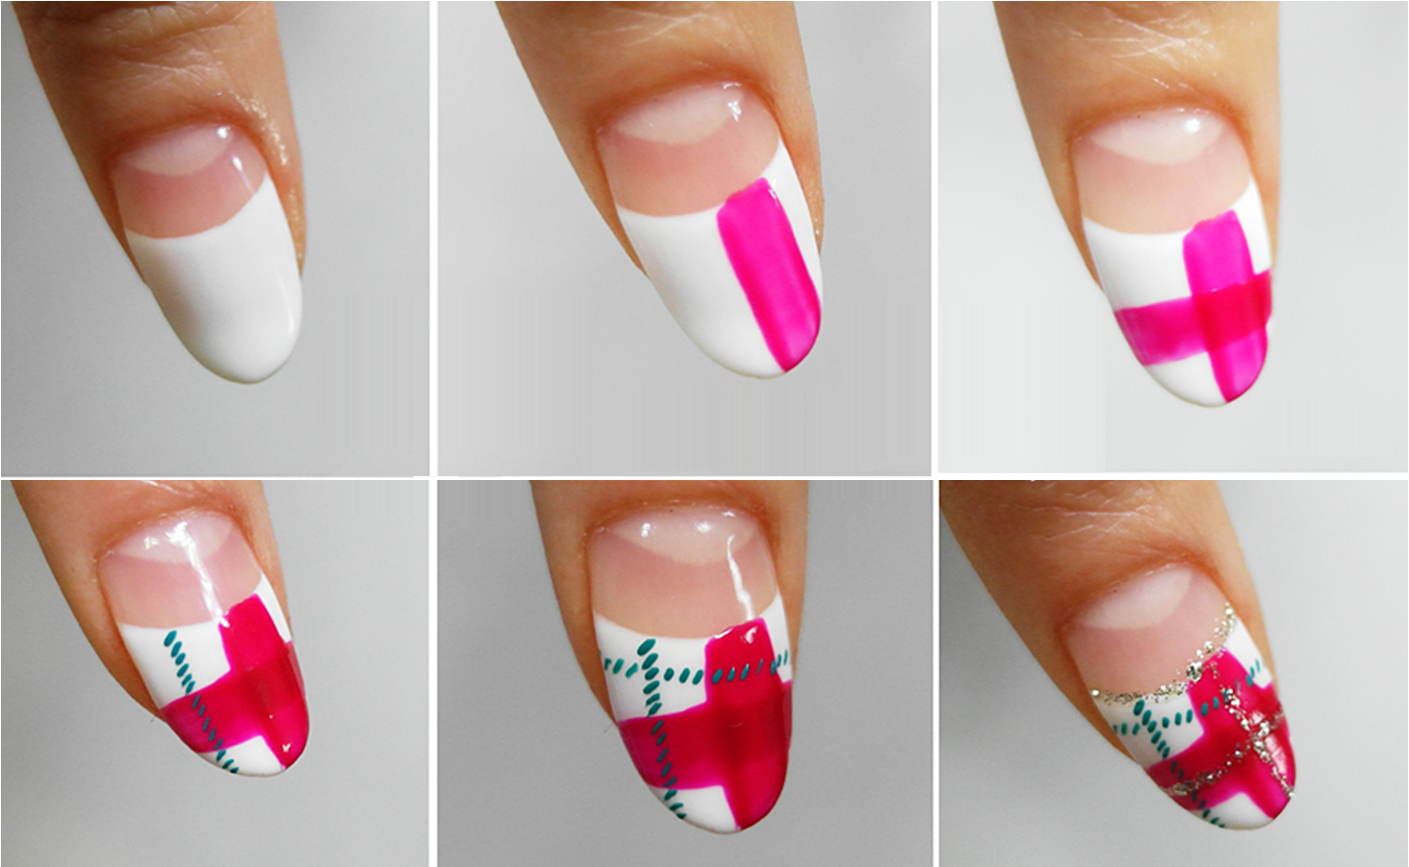 You Can Be An Artist Yourself By Trying The Scottish Pattern Nail Art On Your Own Nails All Have To Do Is Follow Following Steps With Dedication